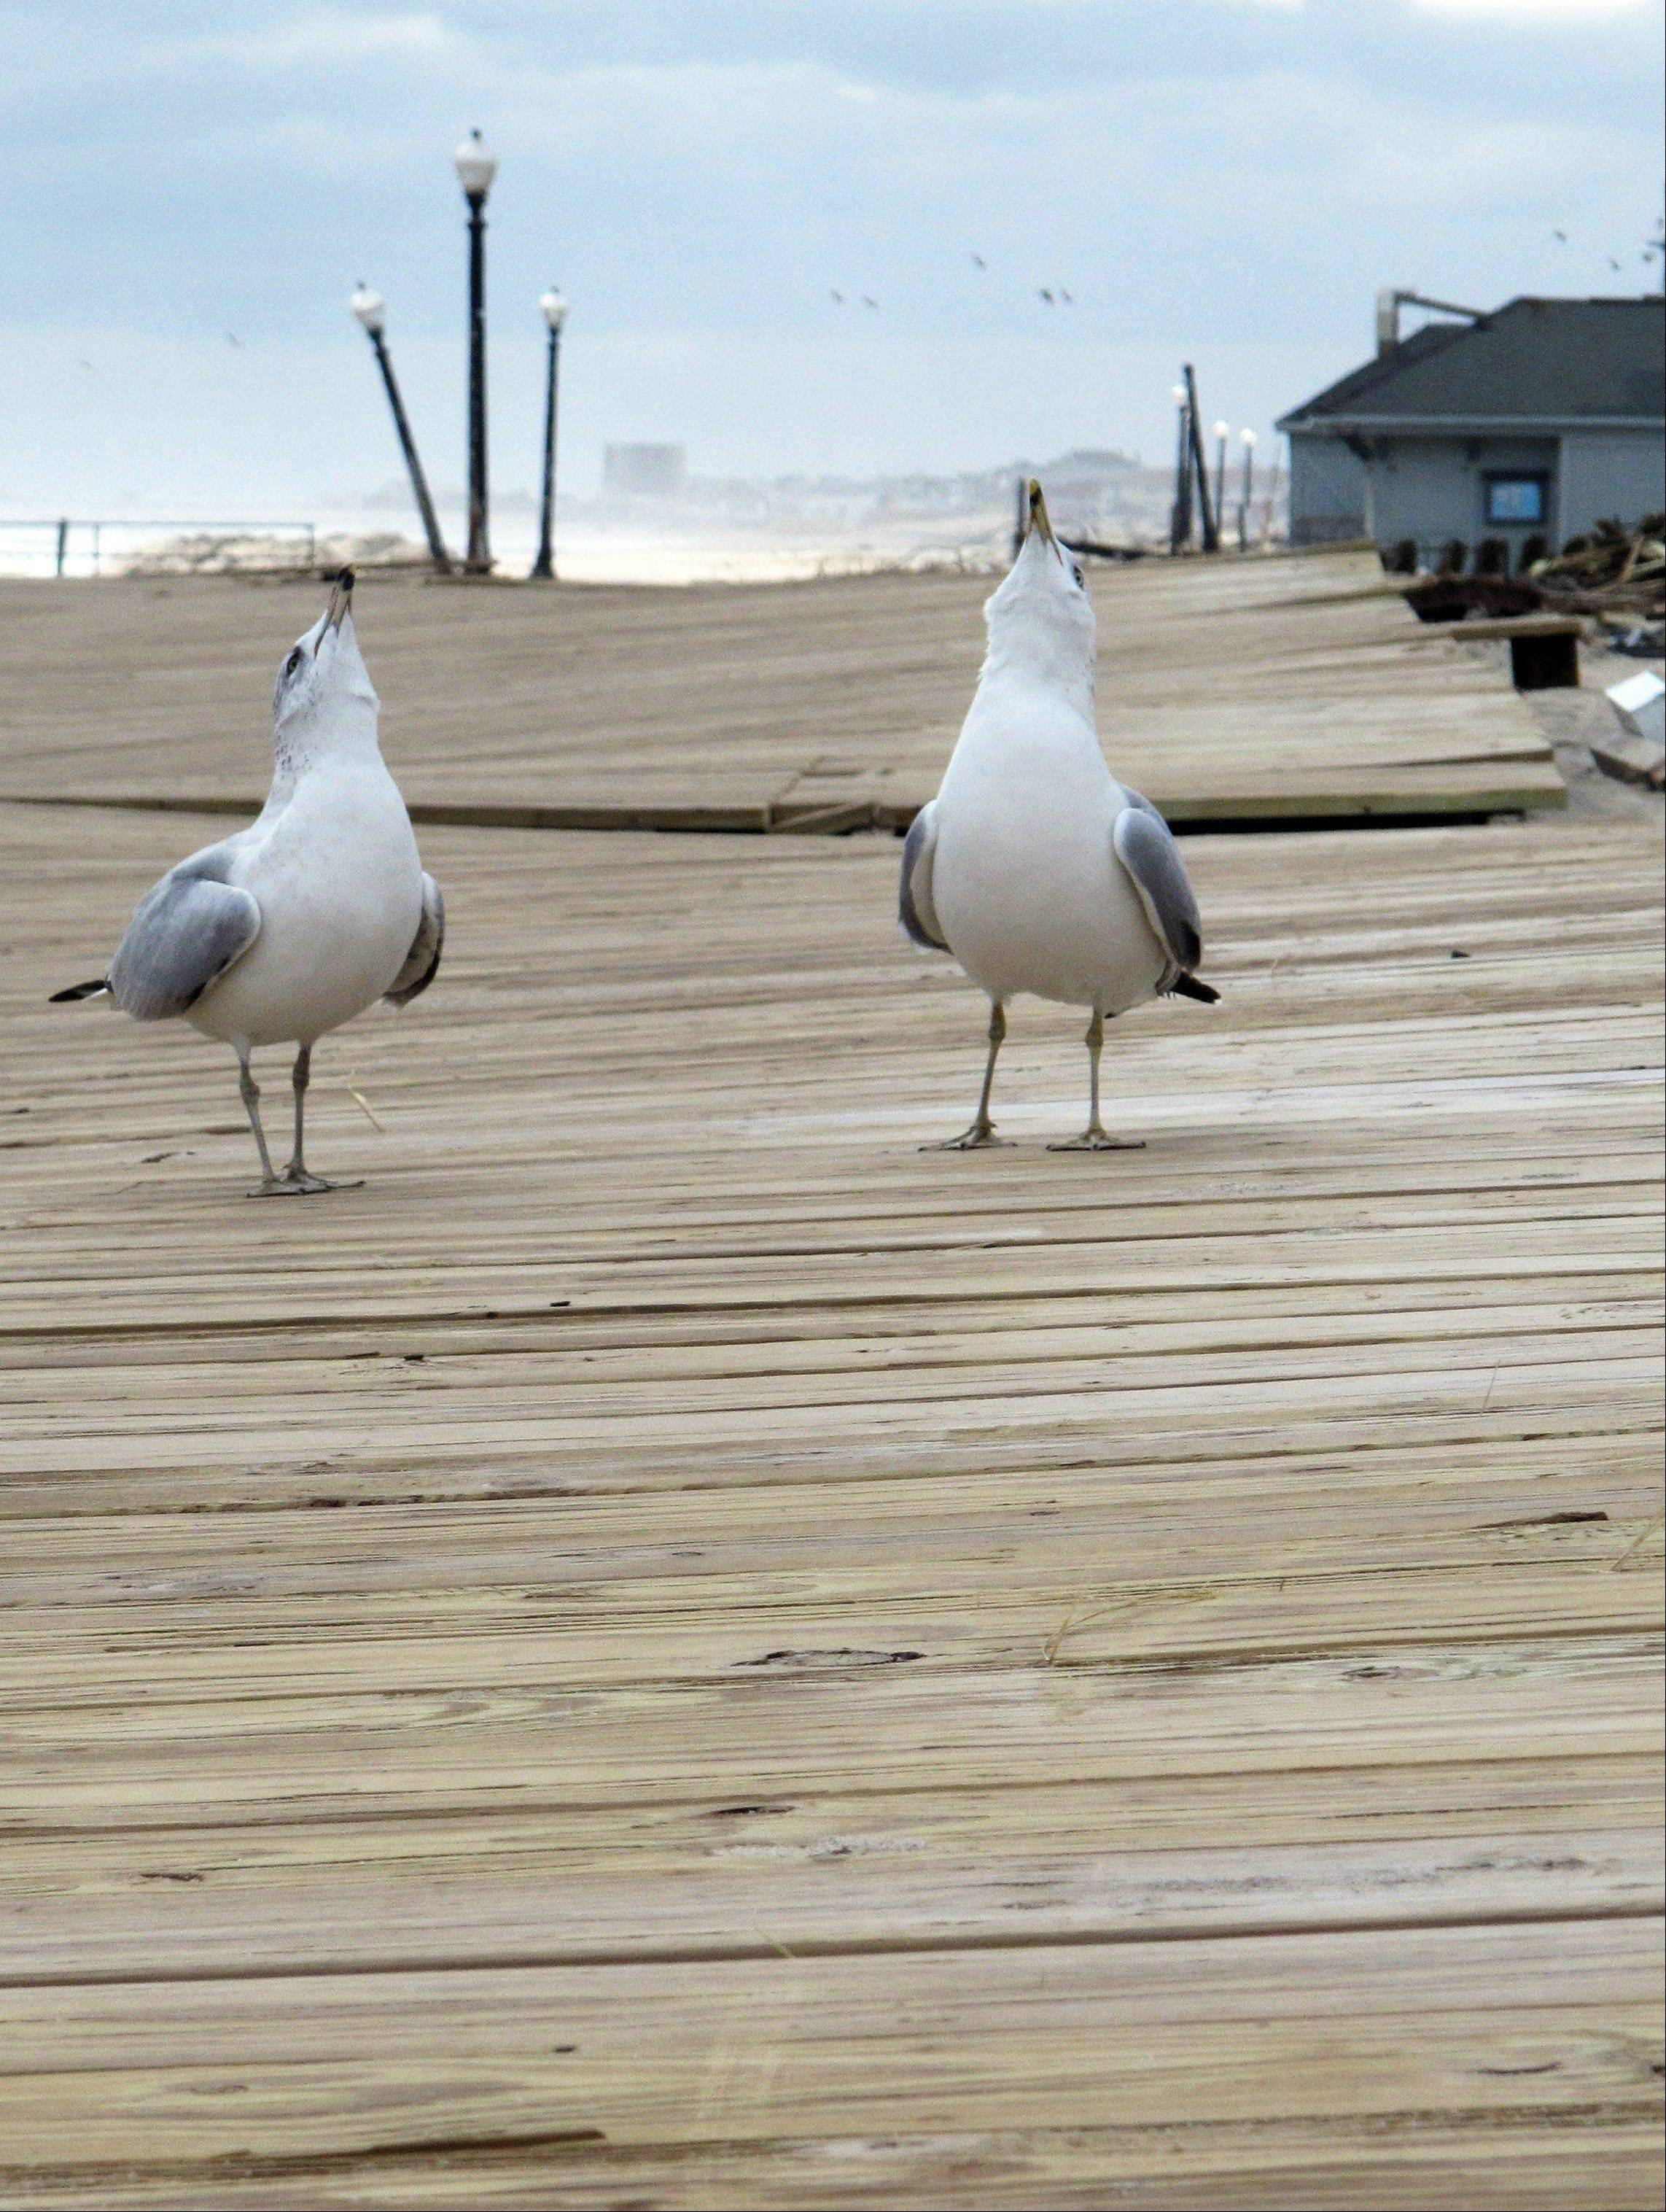 Seagulls screech on the boardwalk in Ocean Grove, N.J. The boardwalk was warped and cracked by Superstorm Sandy. Coastal towns are racing to repair their boardwalks in time for next summer.